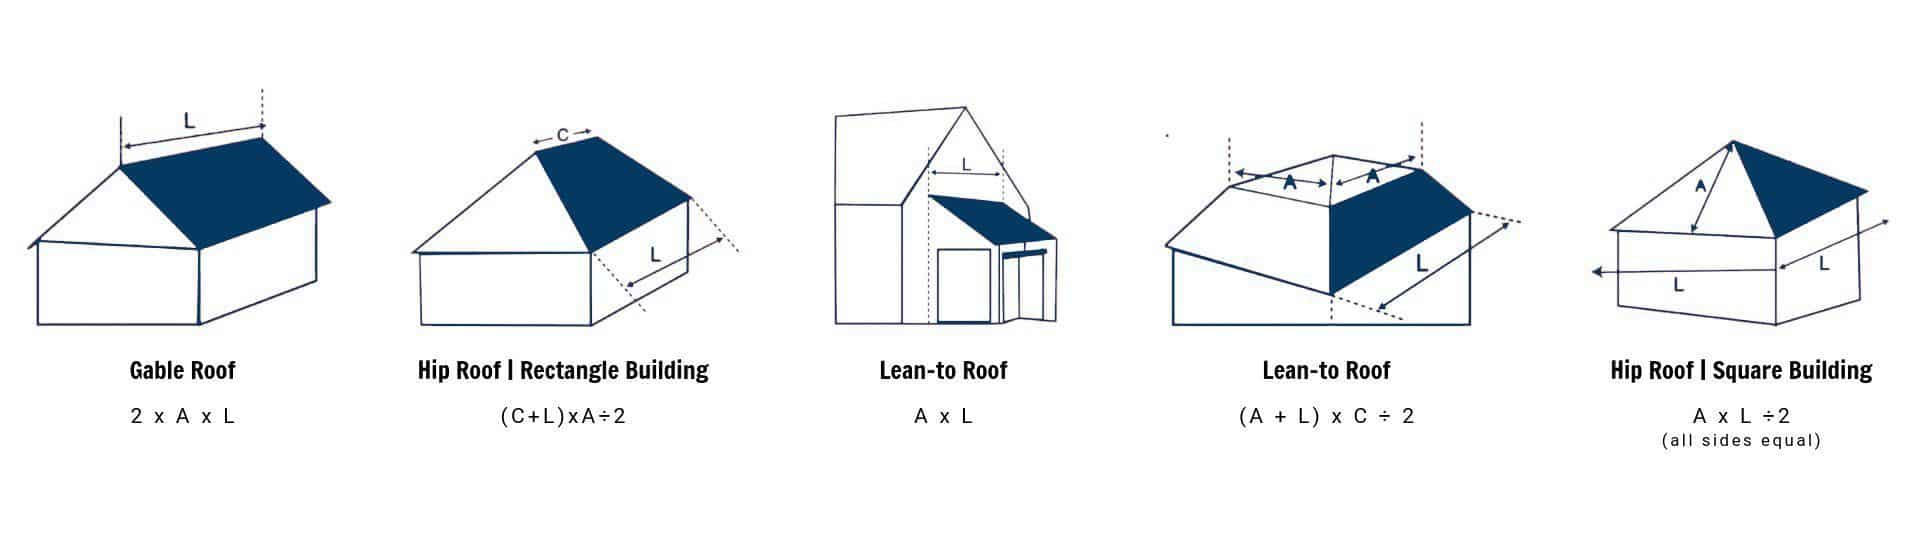 Roofing Cost Calculator - Bluebonnet Custom Roofing